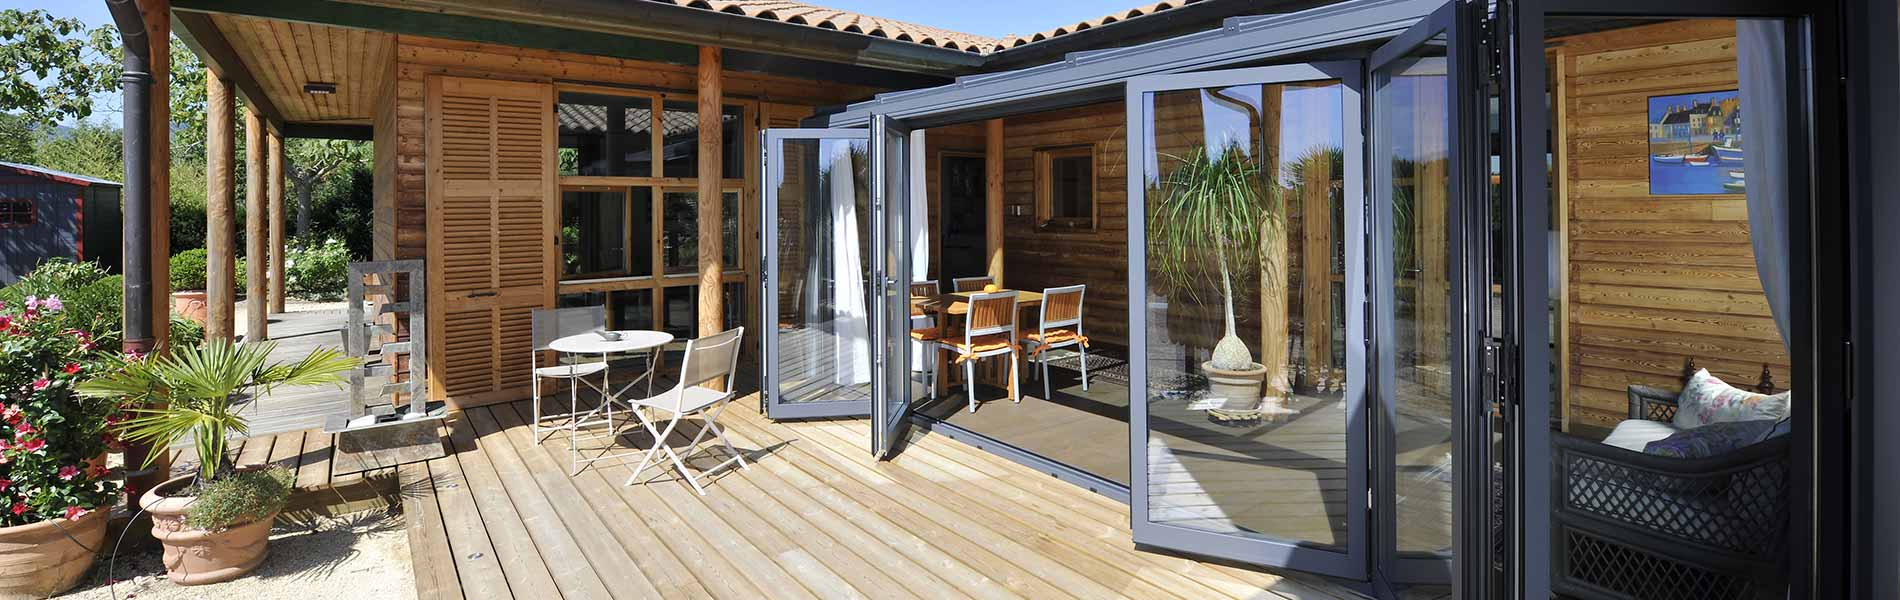 Aluminium Bifold Doors Reynaers At Home